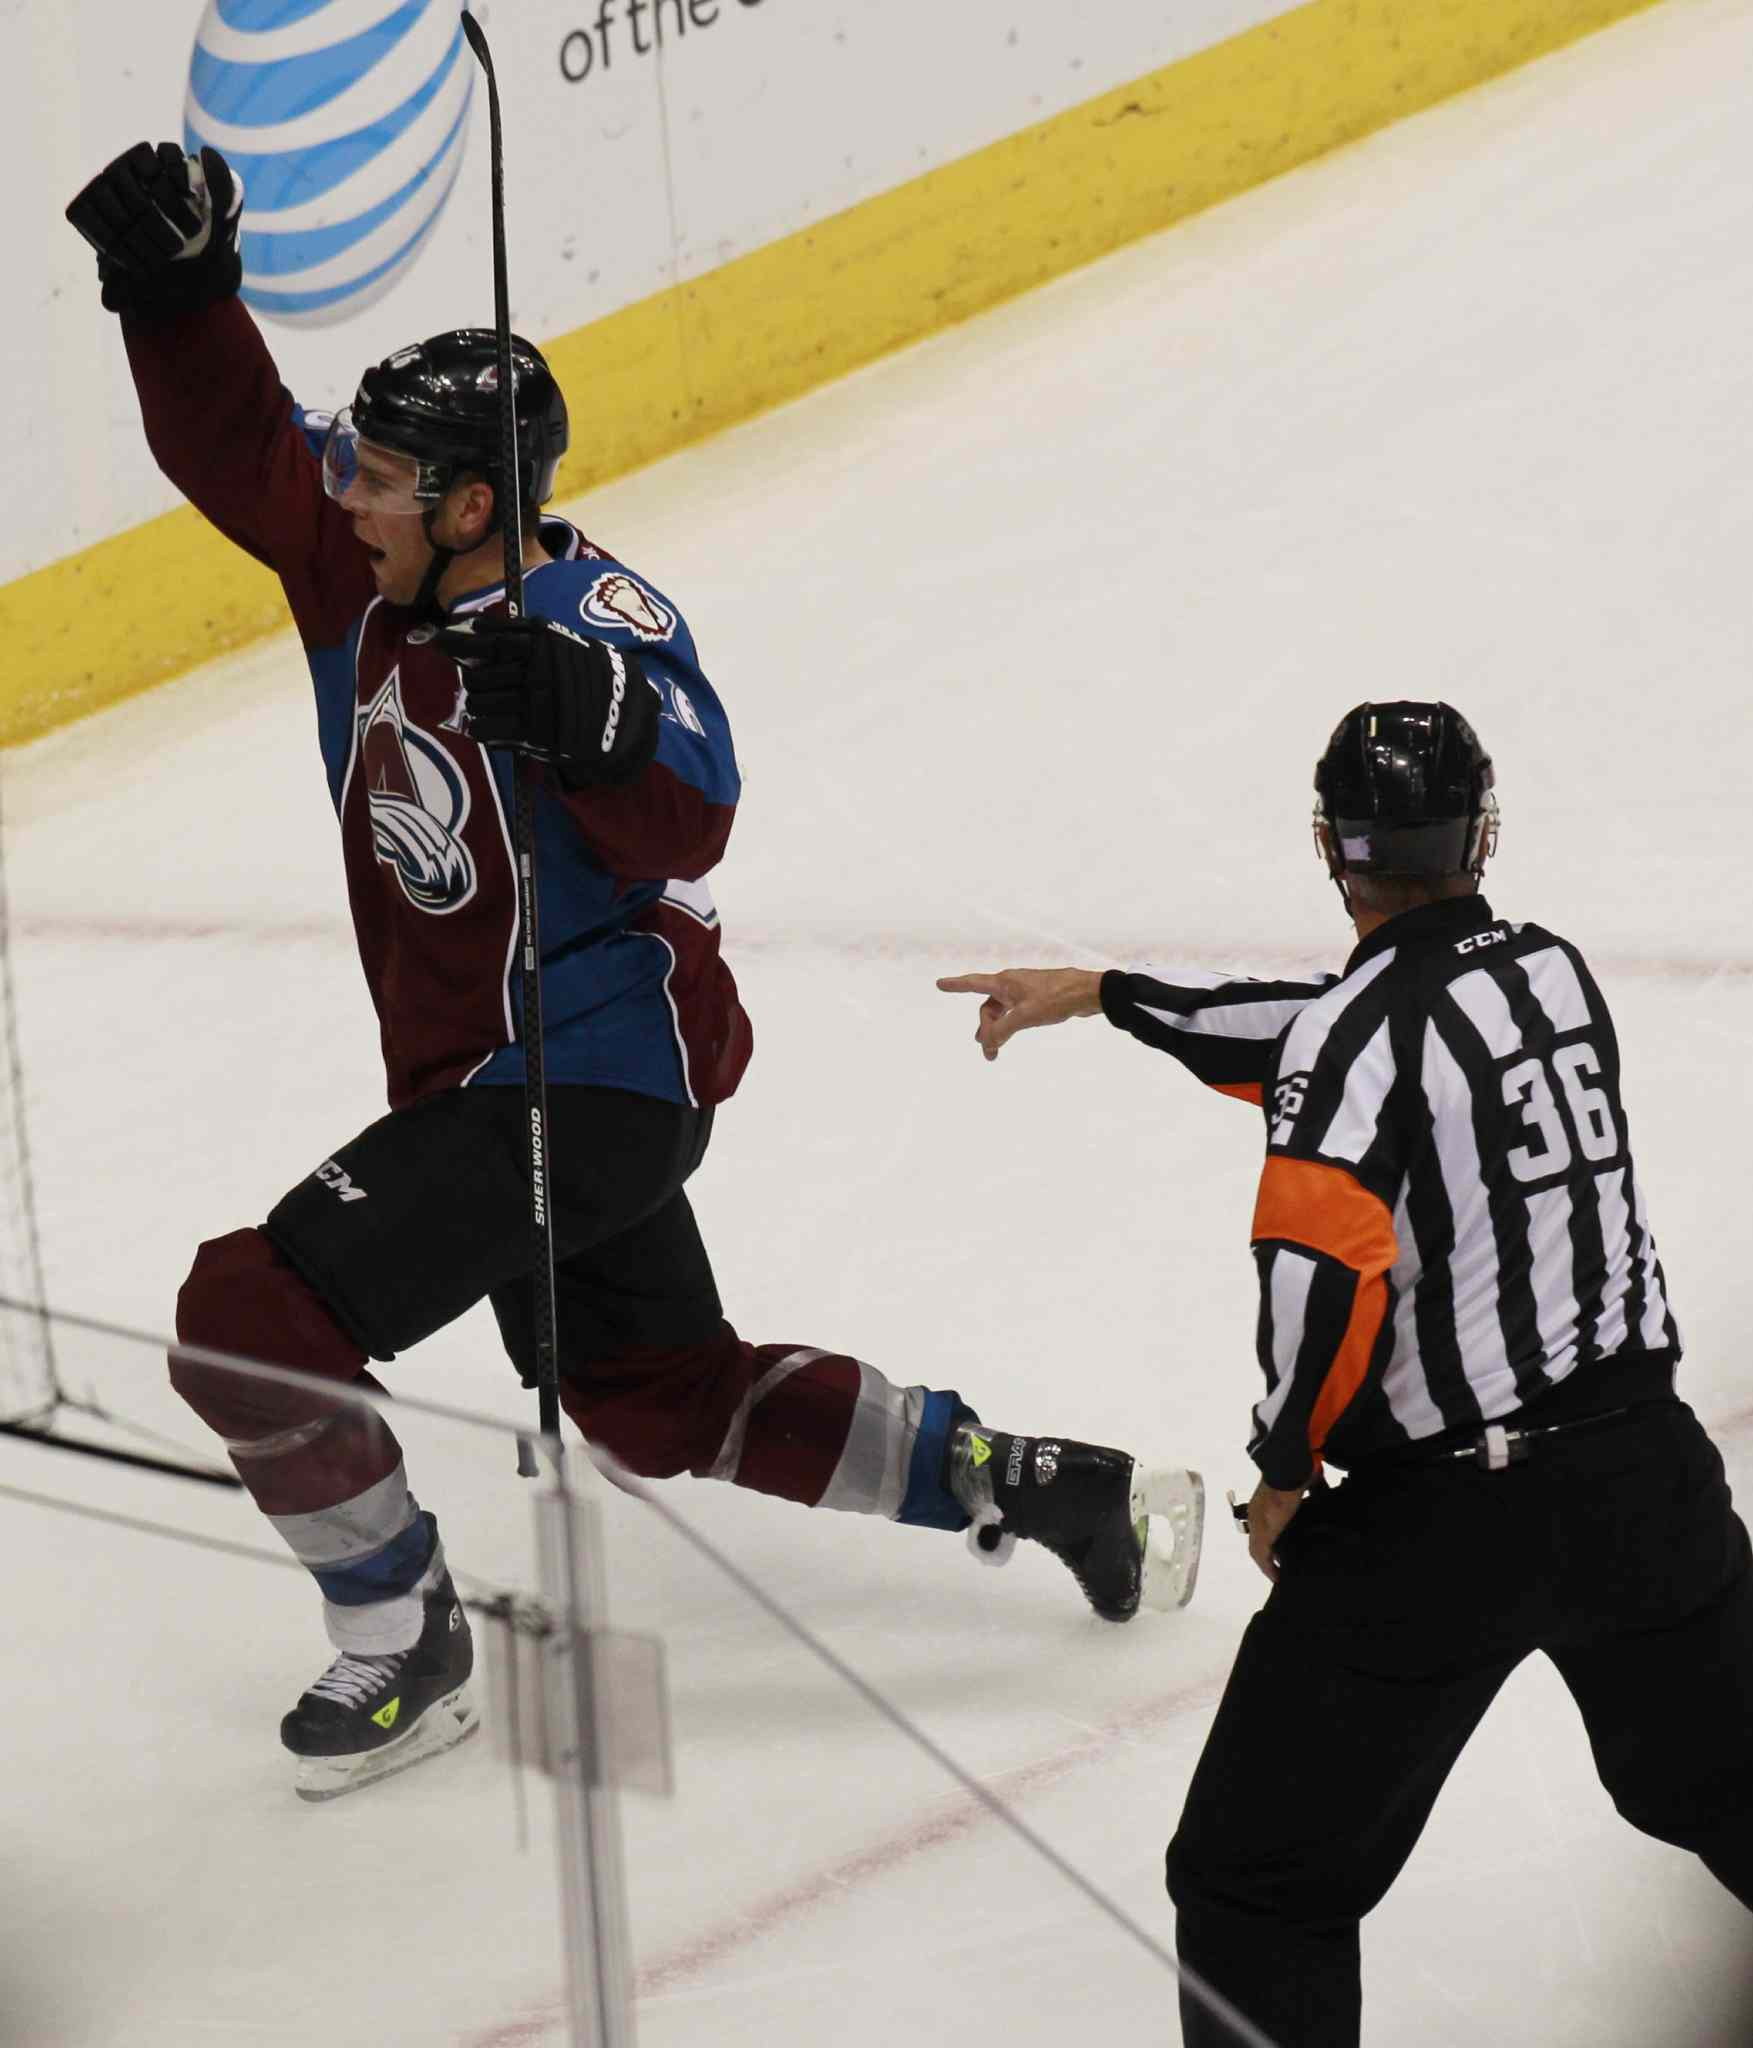 Colorado Avalanche centre Paul Stastny celebrates scoring the go-ahead goal in the third period.